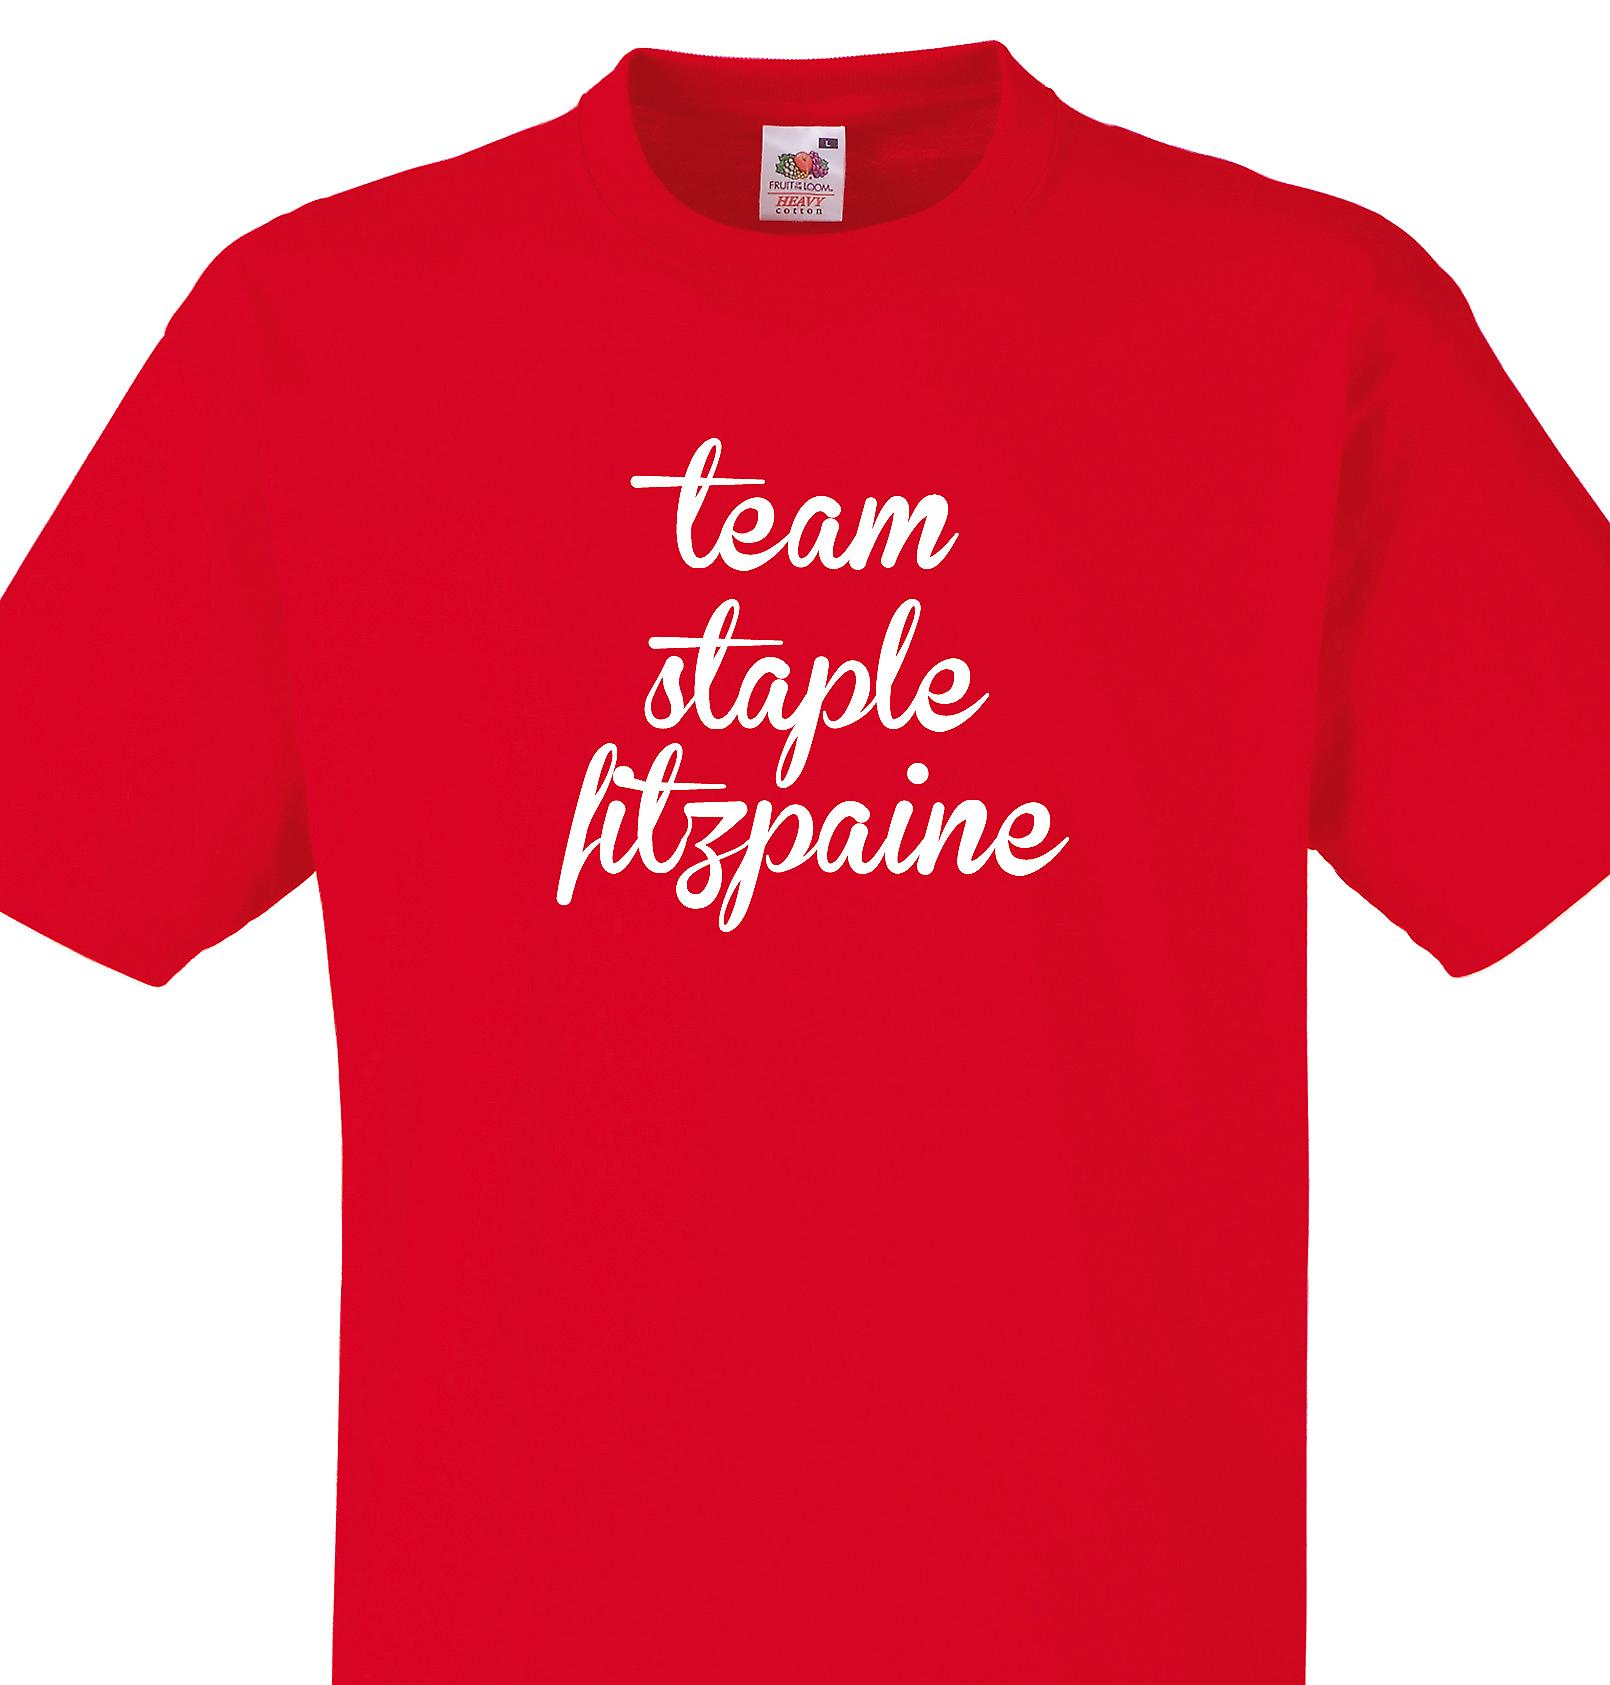 Team Staple fitzpaine Red T shirt